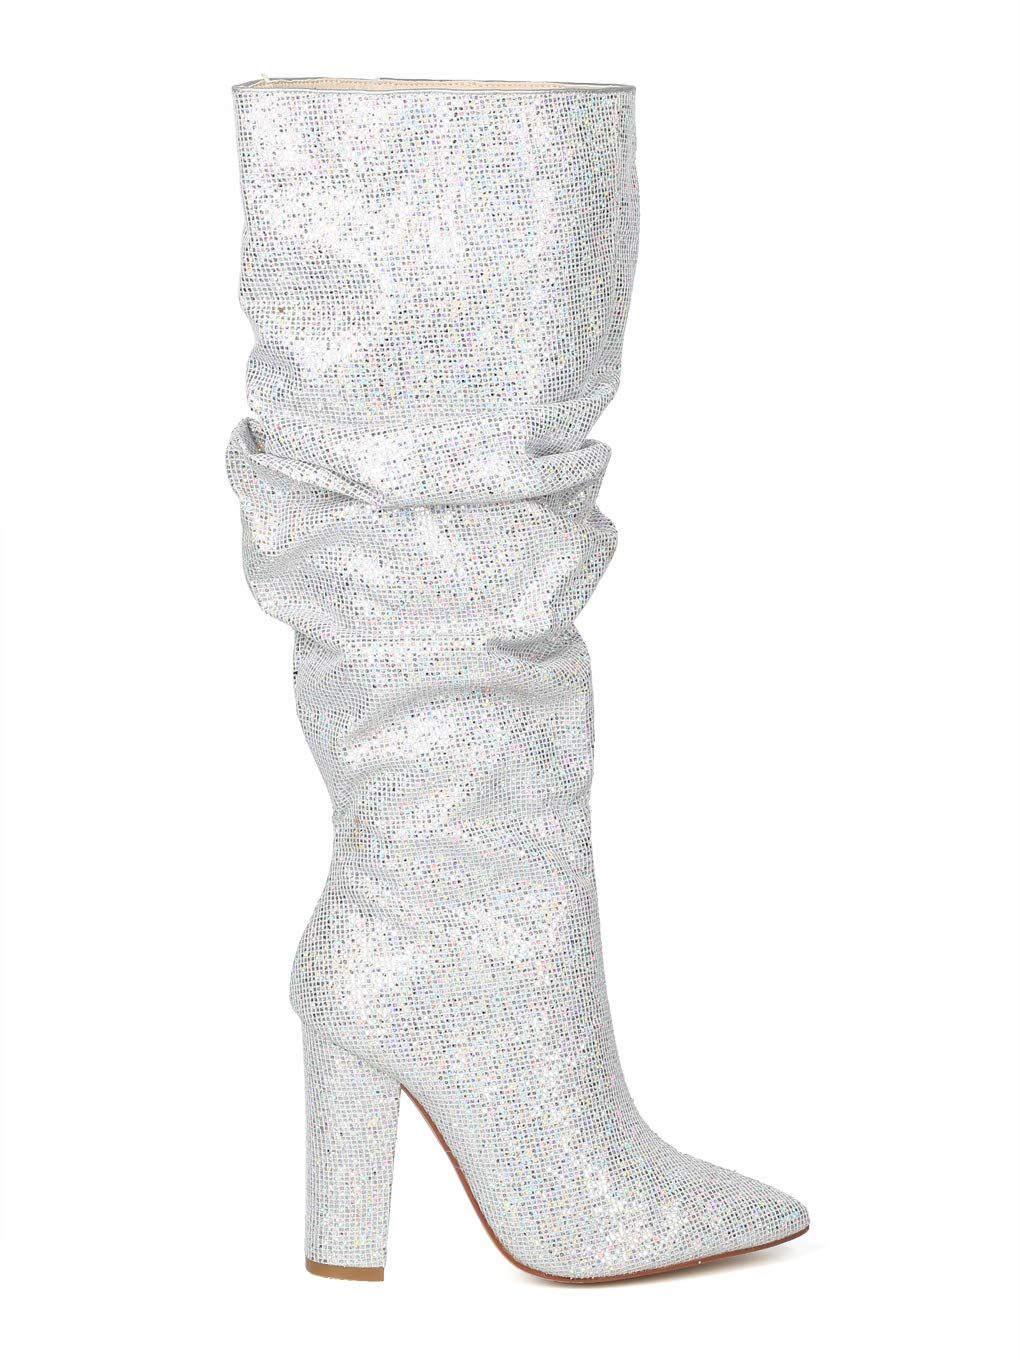 cd7e31cfb1a Alrisco Women Glitter Knee High Pointy Toe Block Heel Slouchy Boot IA29  Cape Robbin Silver Size  8.0    Click image to review more details.